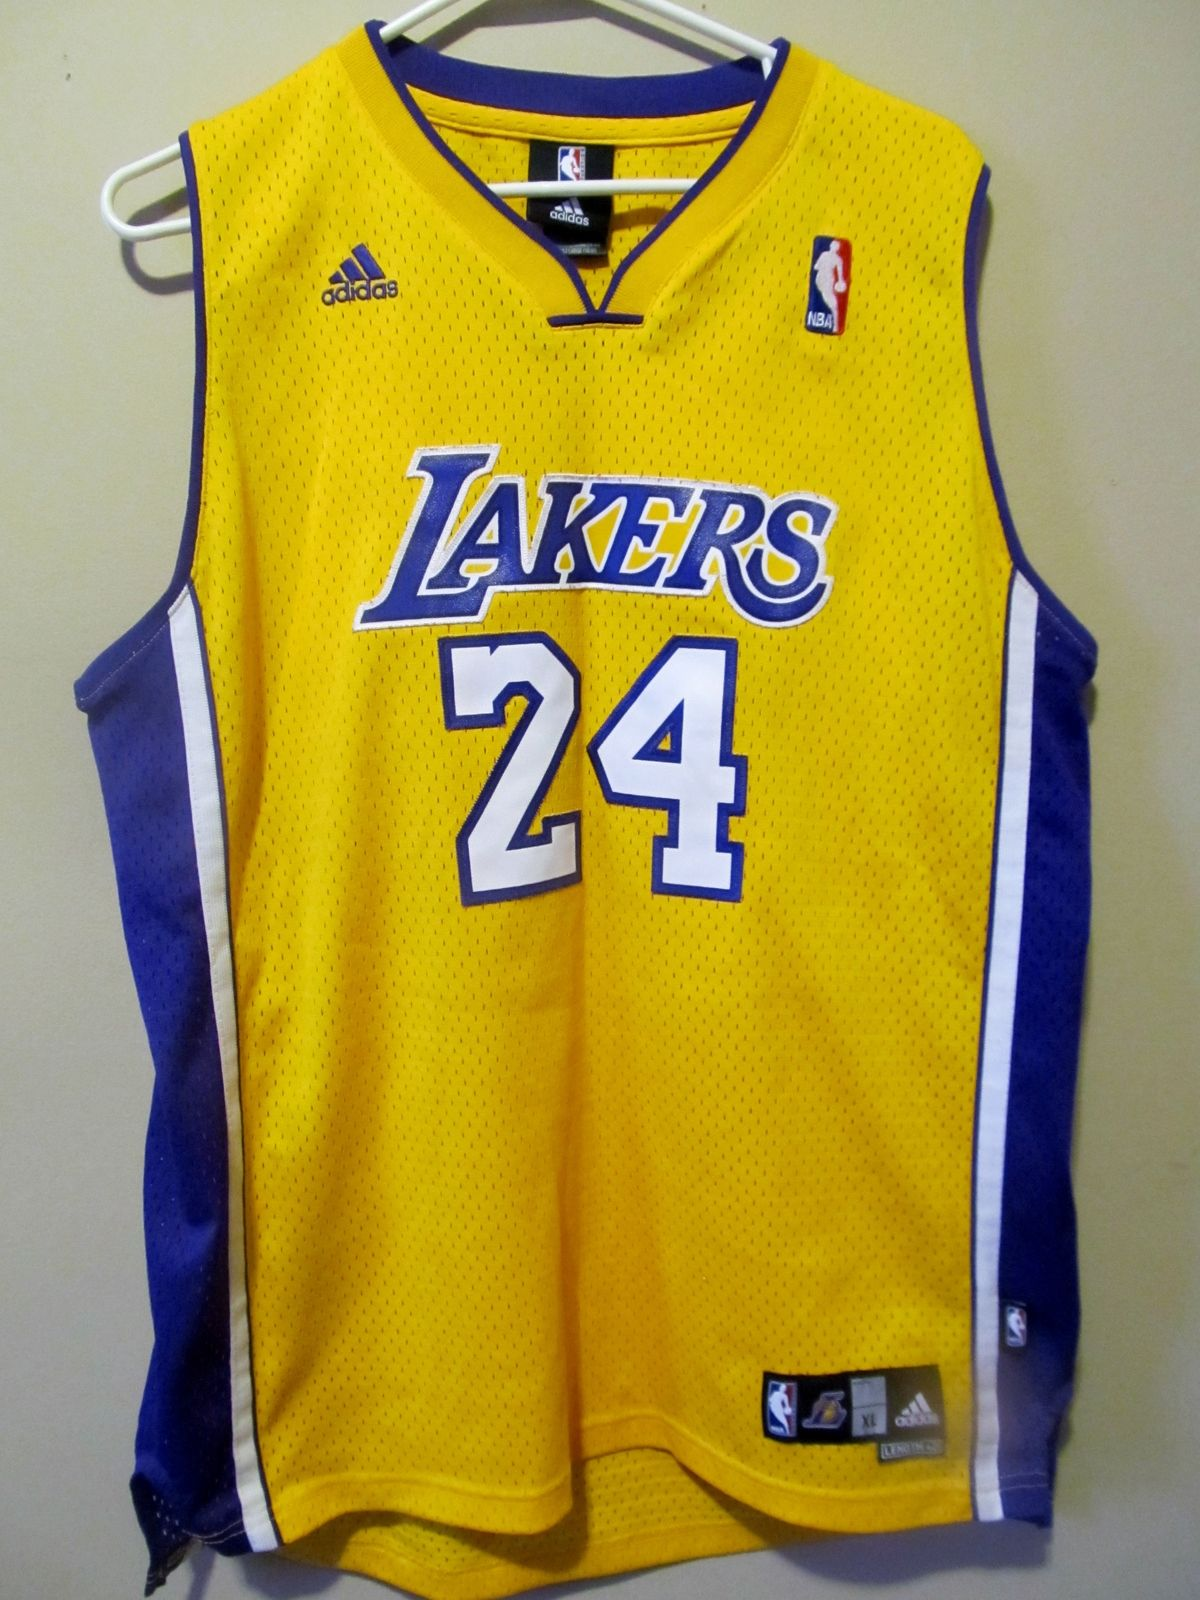 802510010bd9 Adidas Authentic Kobe Bryant Los Angeles Lakers jersey